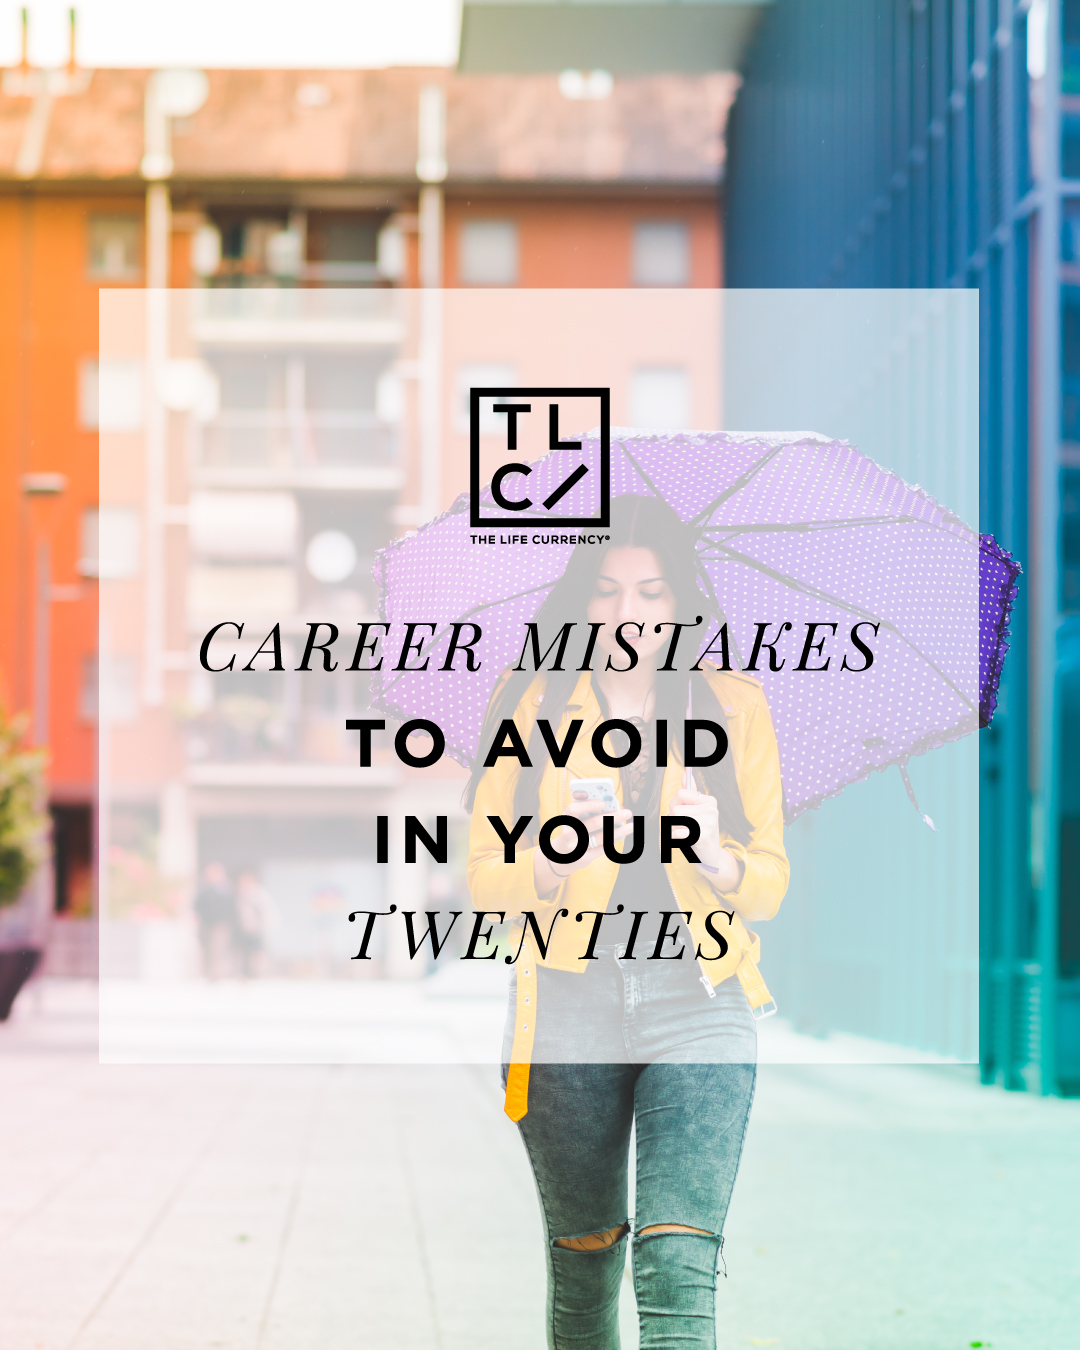 Career mistakes to avoid in your 20's